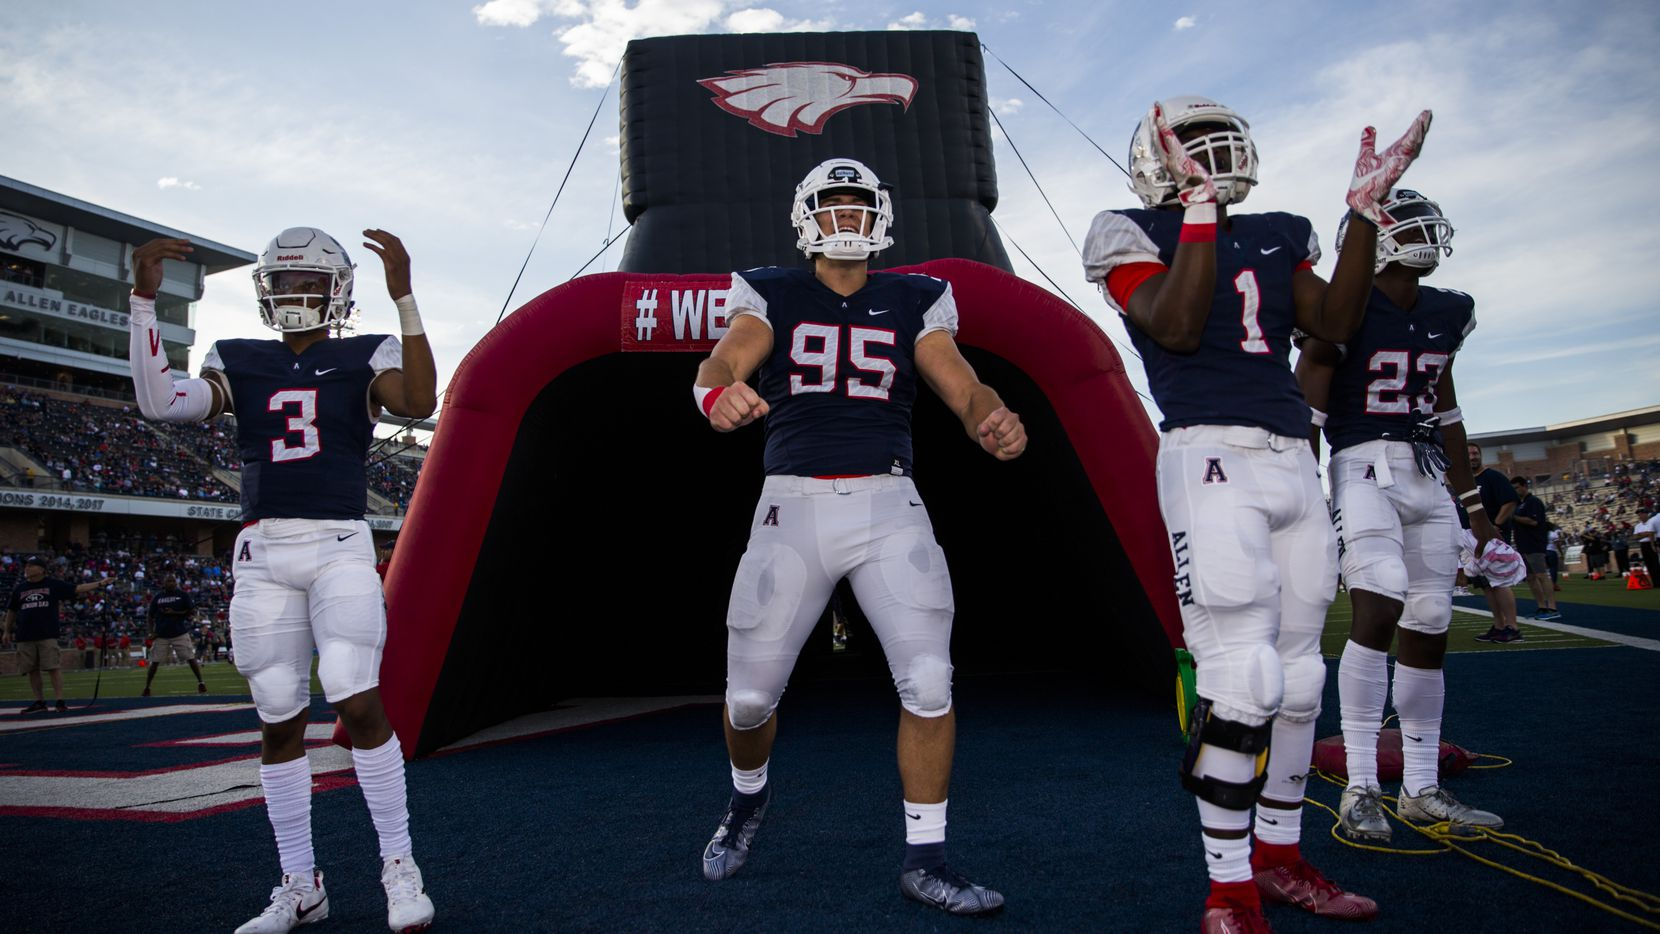 FILE - Allen football players are pictured before a game against Cedar Hill on Friday, Aug. 30, 2019, at Eagle Stadium in Allen.